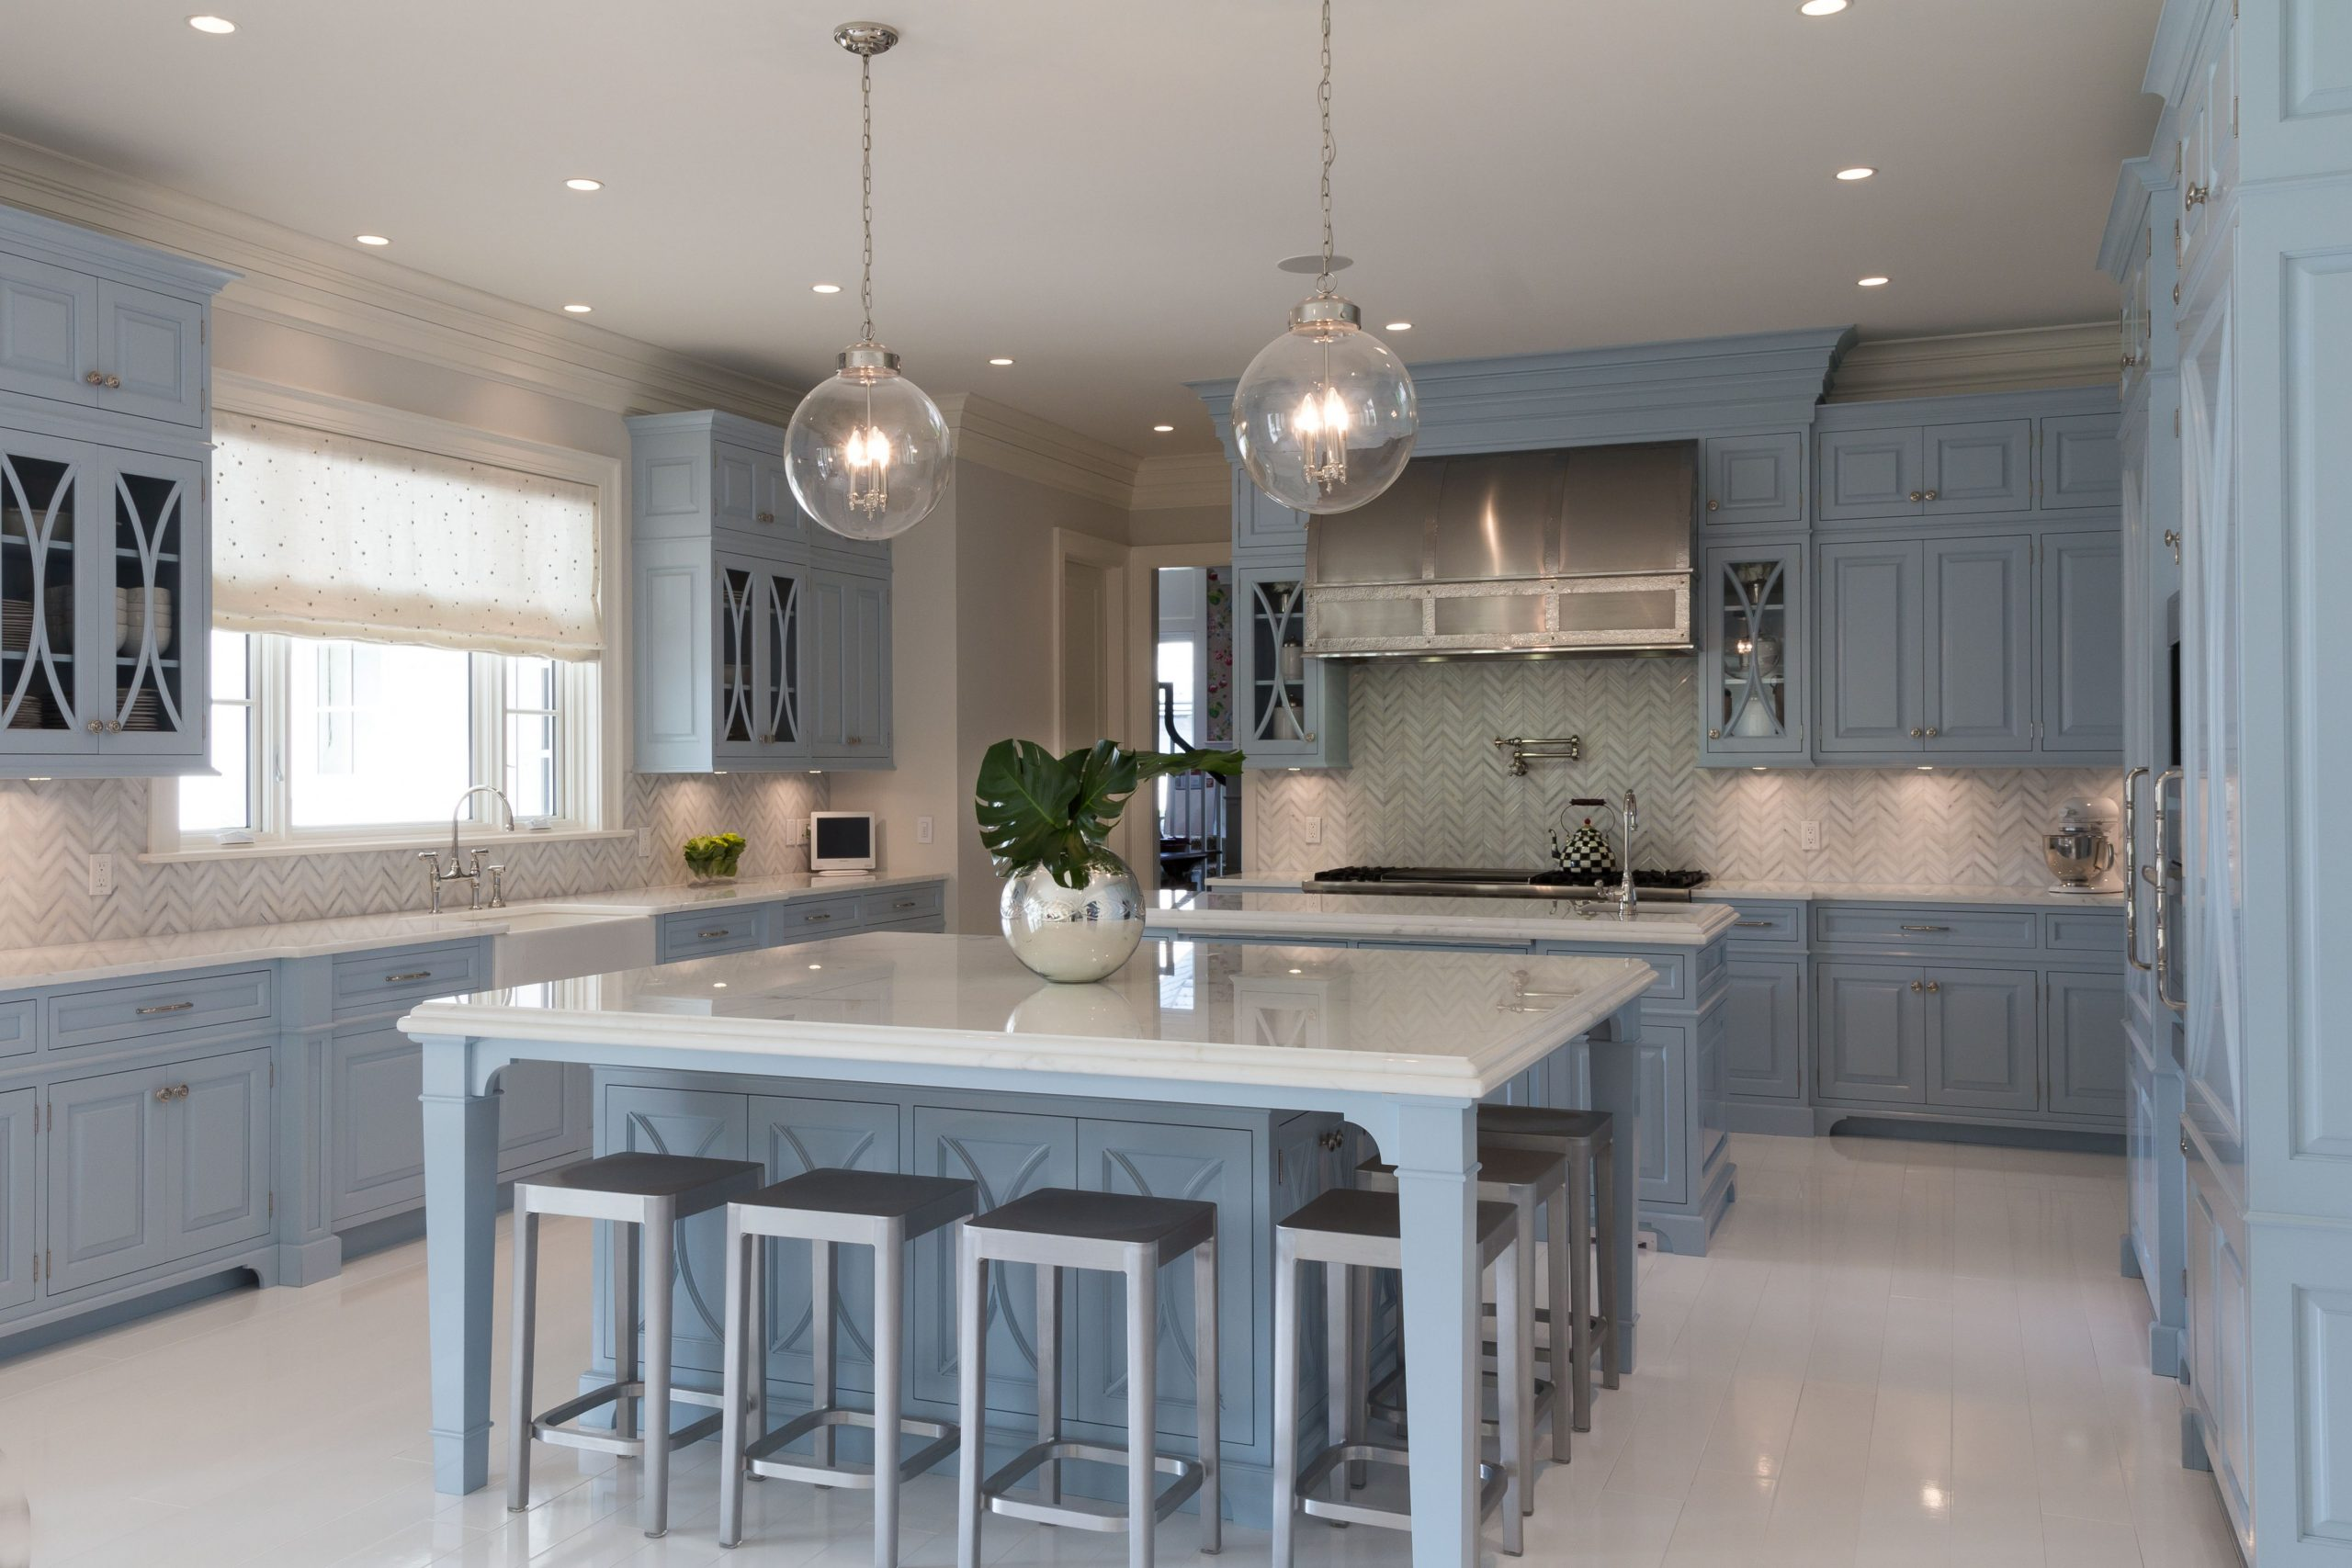 How To Match Cabinet Paint To Countertops  Shoreline Painting - Matching Kitchen Cabinets And Flooring